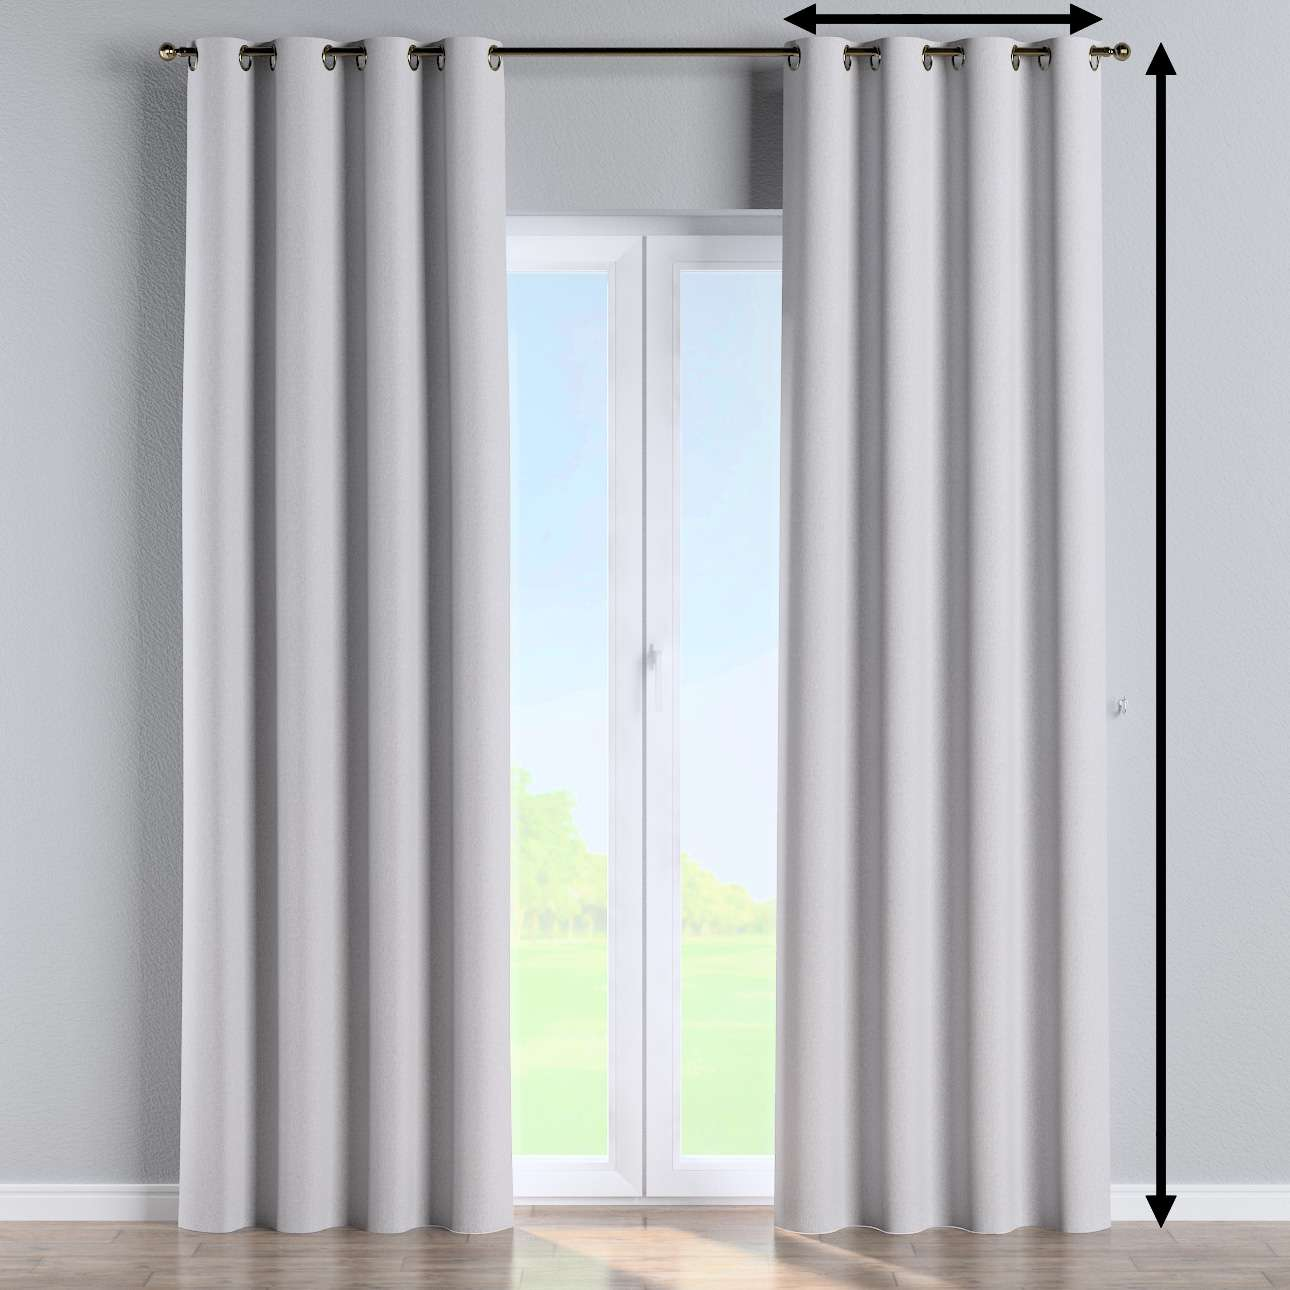 Eyelet curtain in collection Amsterdam, fabric: 704-45